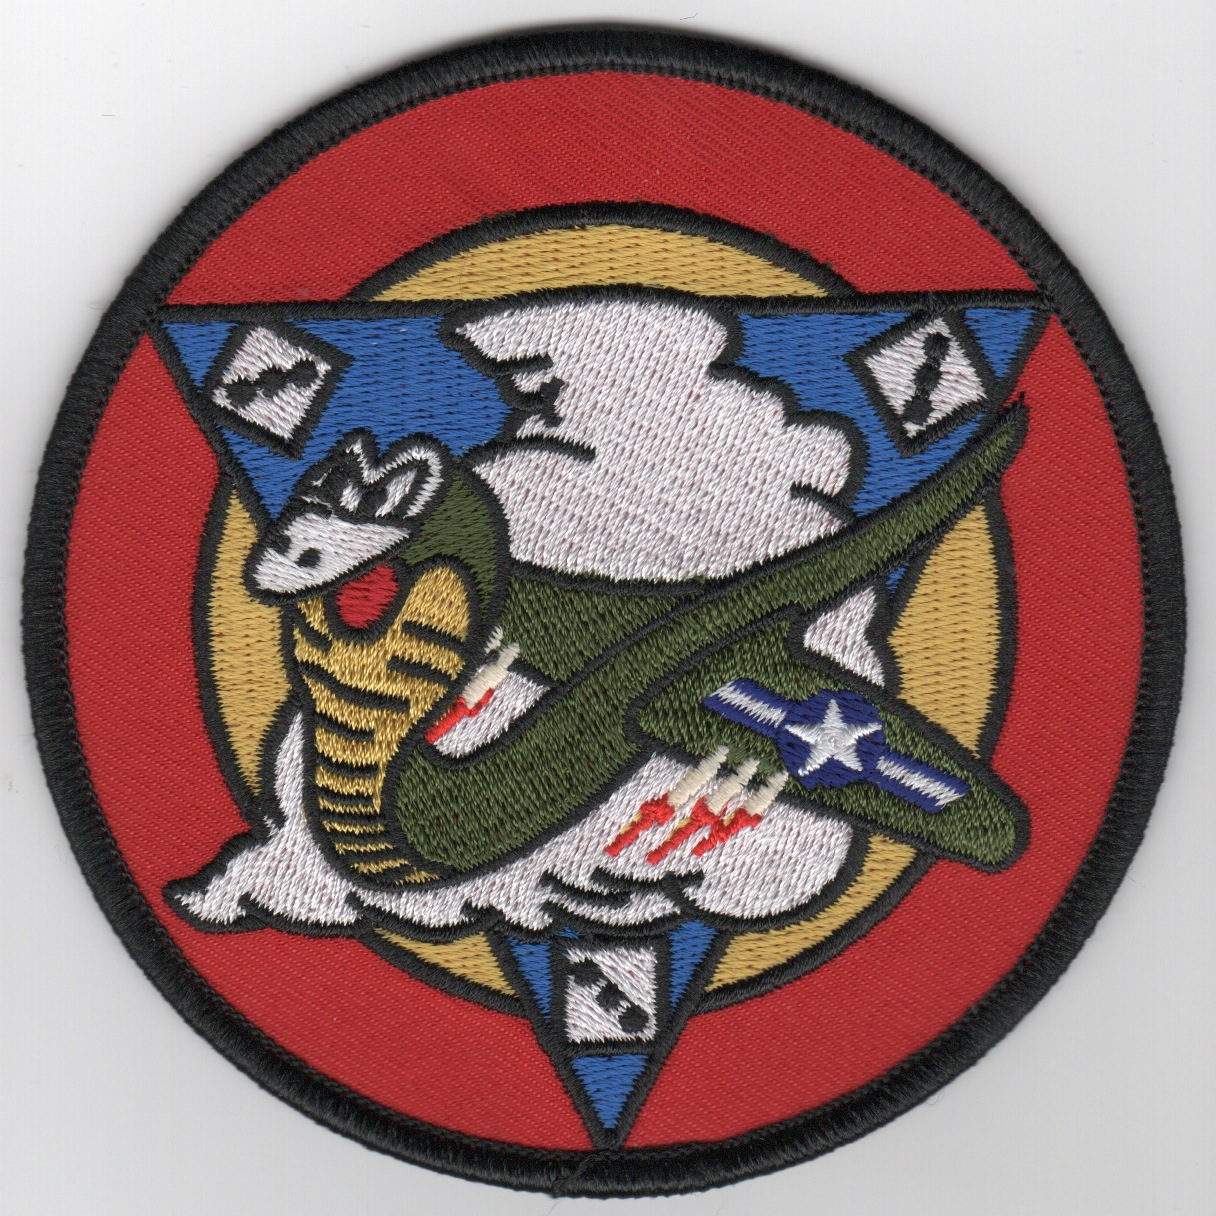 131FS 'Historical' Squadron Patch